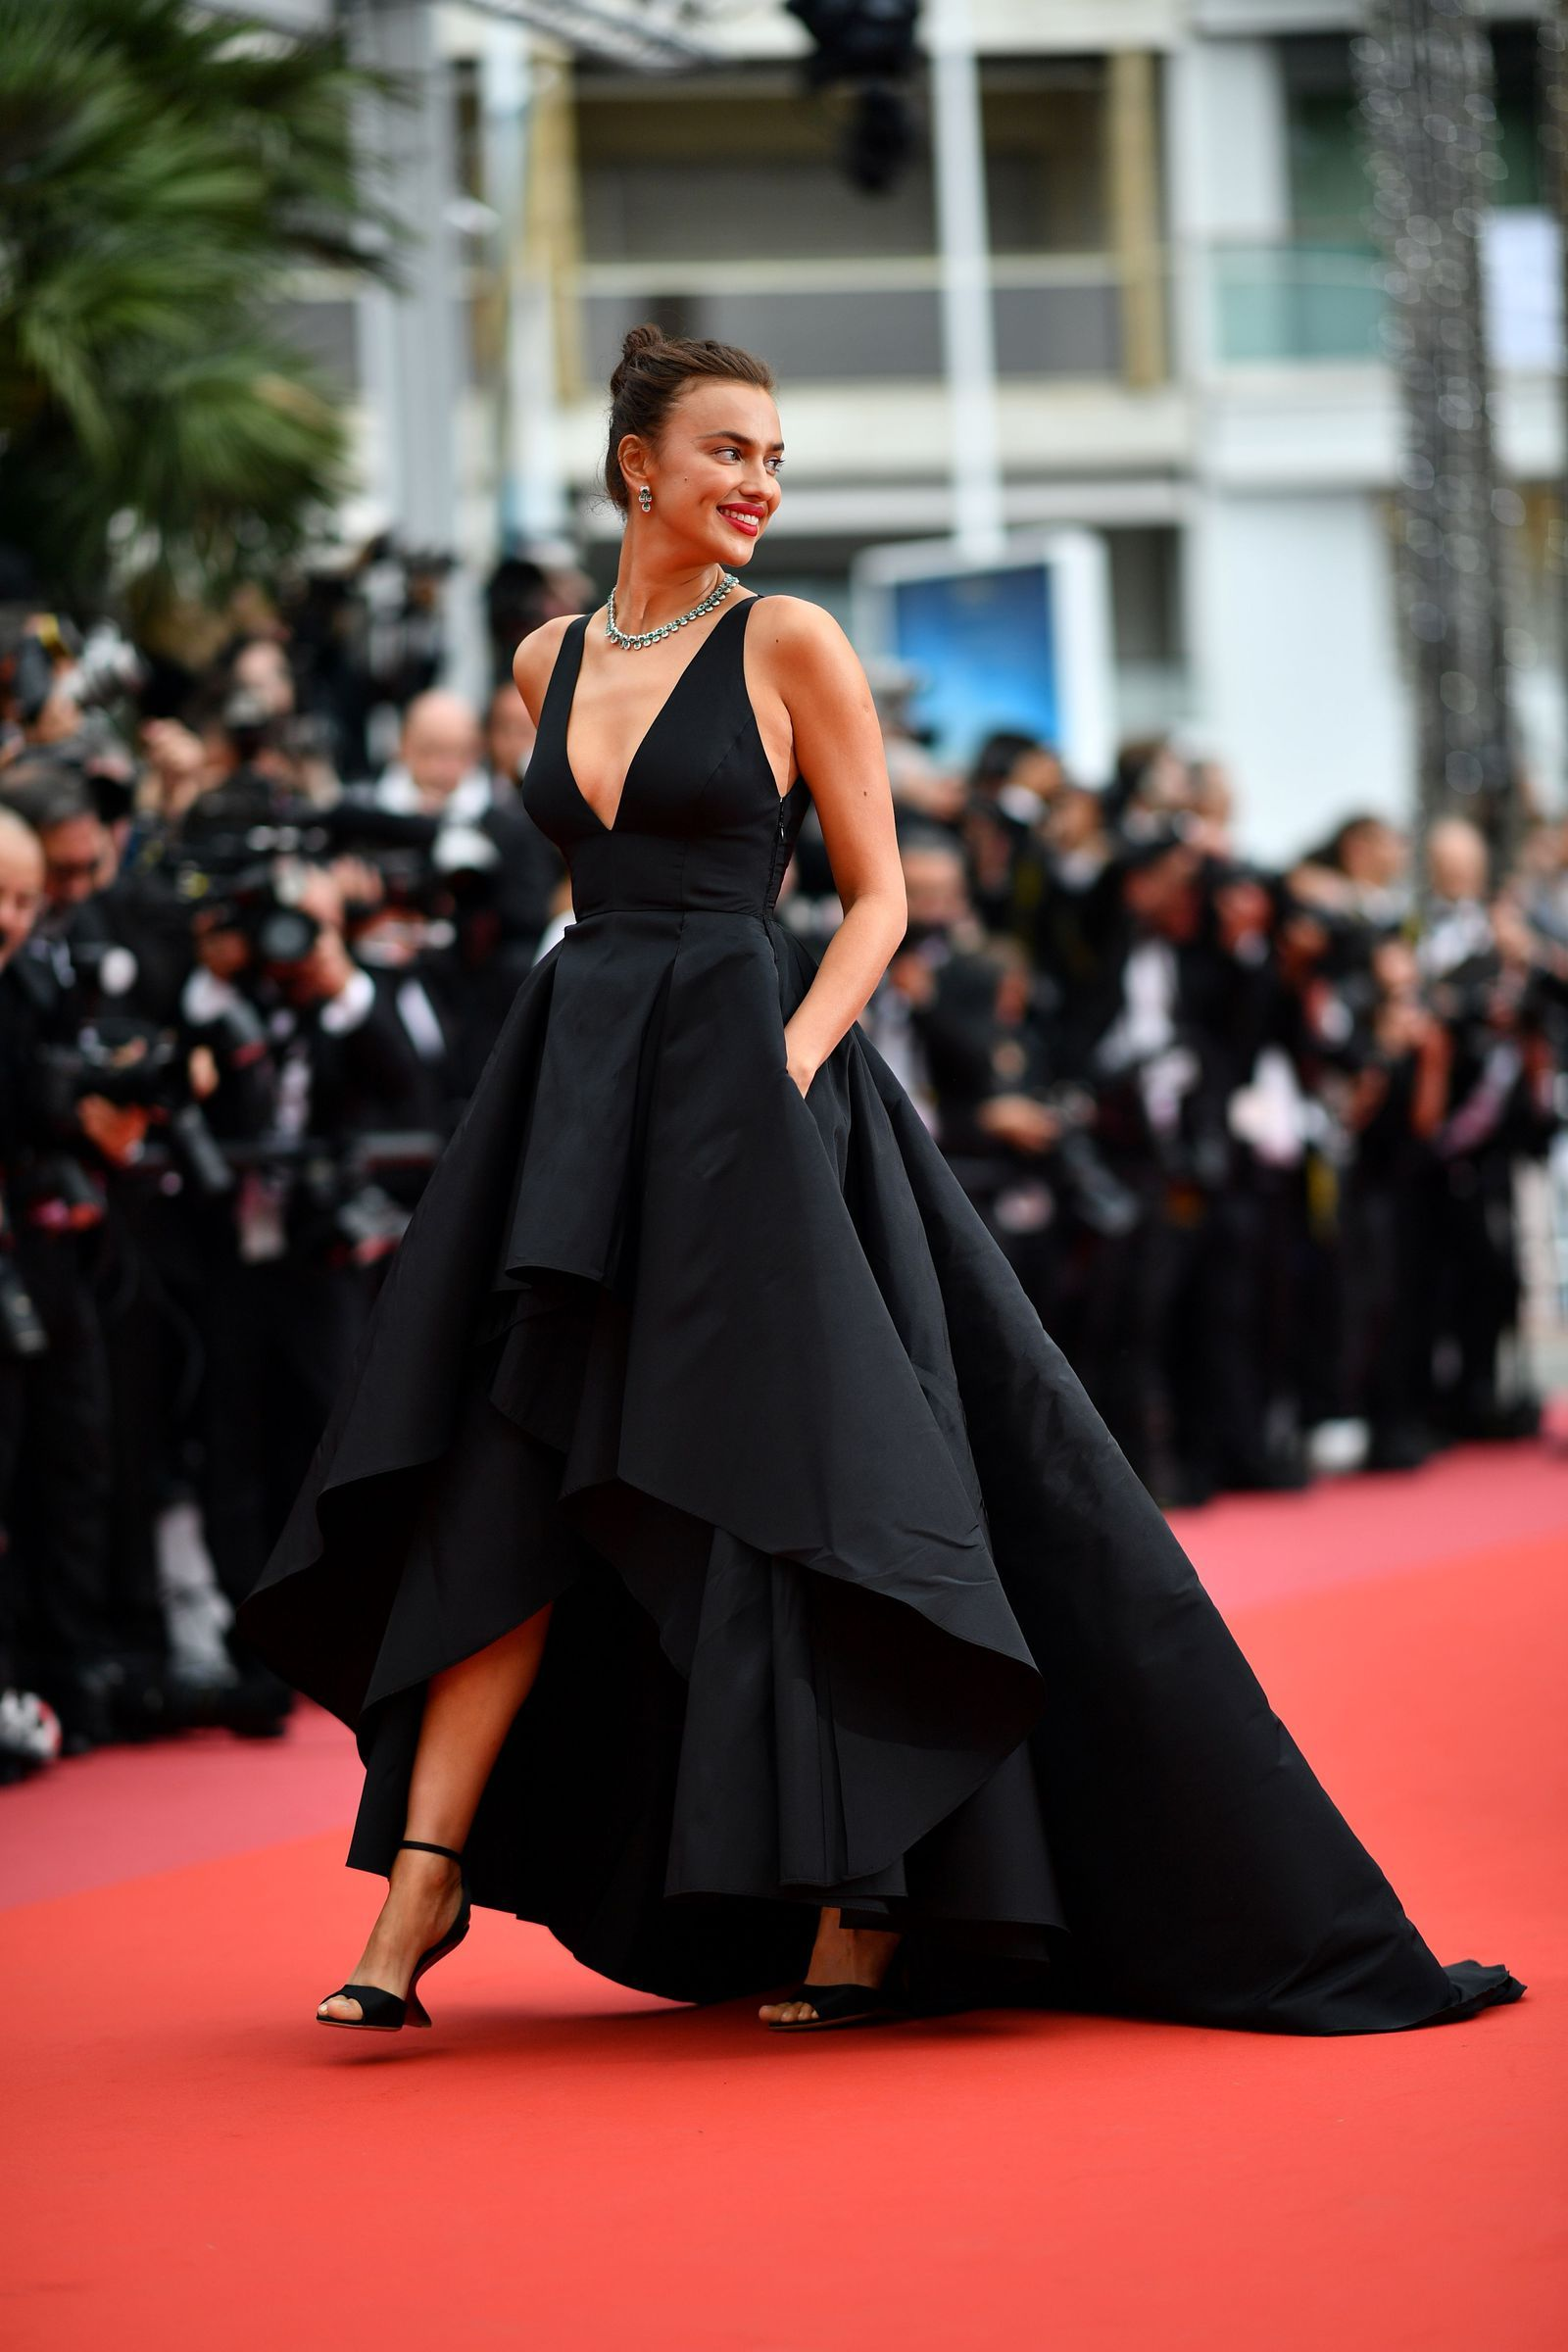 The Most Glamorous Looks At The Amfar Cannes Gala Black